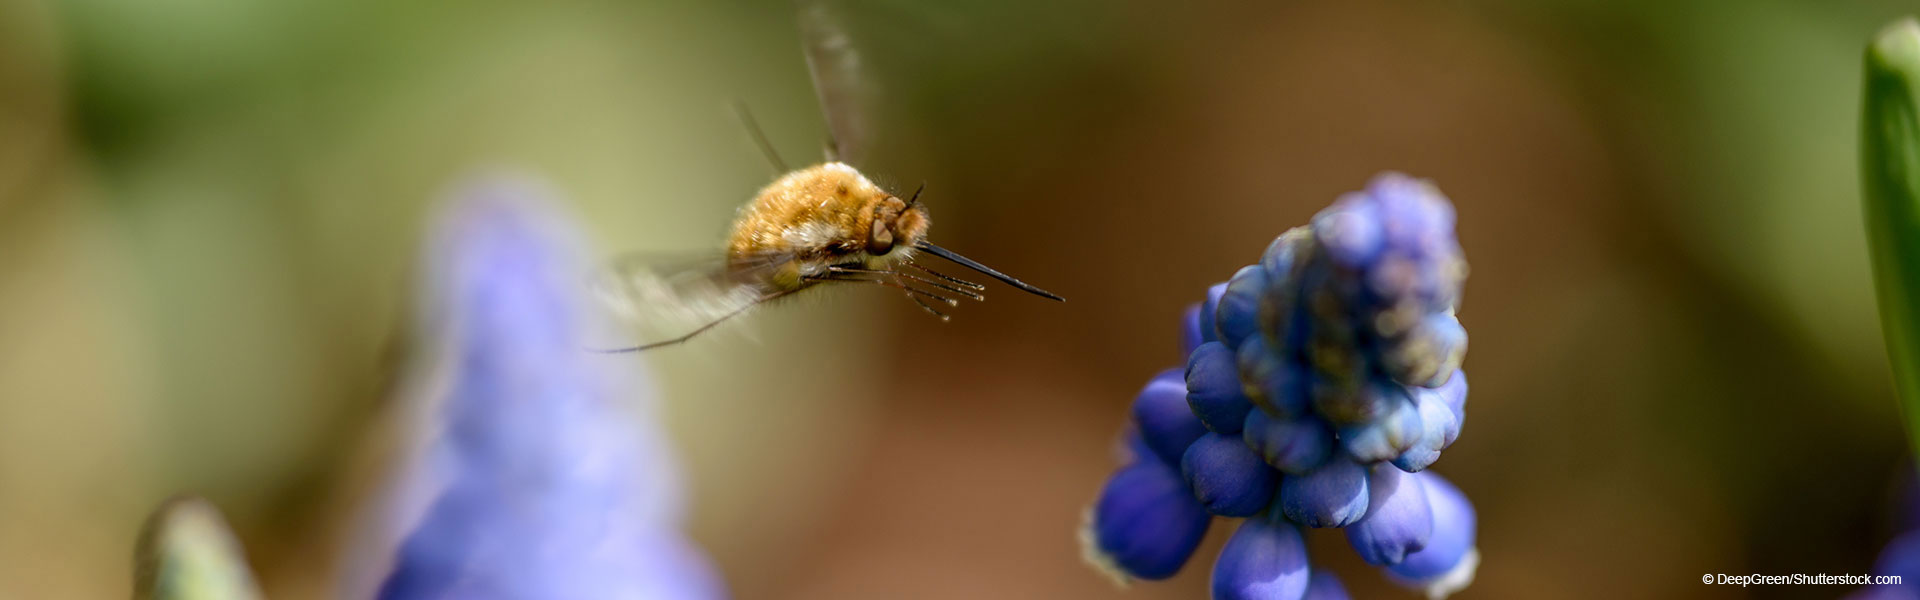 Large bee-fly flying towards a grape hyacinth flower